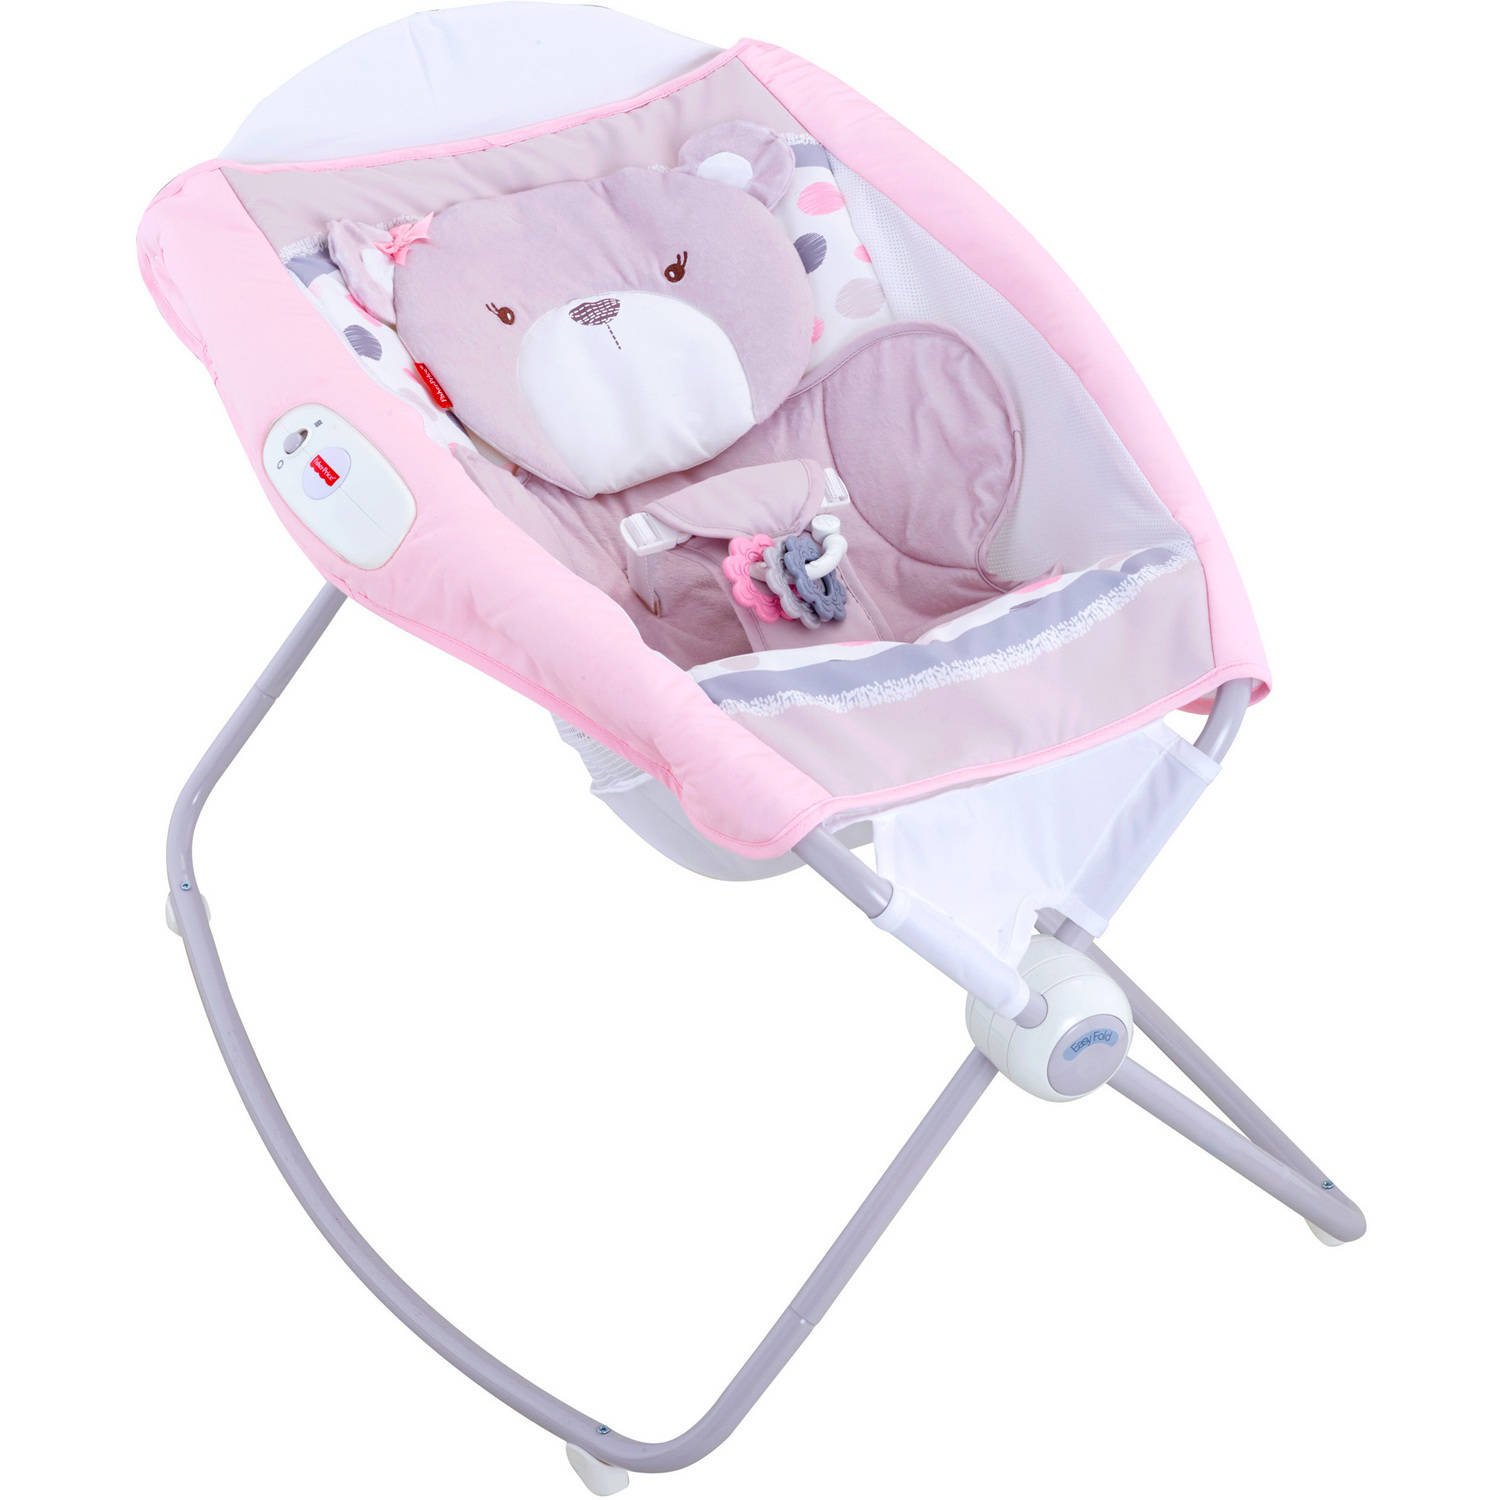 Fisher-Price My Little Snugabear Ballerina Deluxe Newborn Rock 'n Play Sleeper